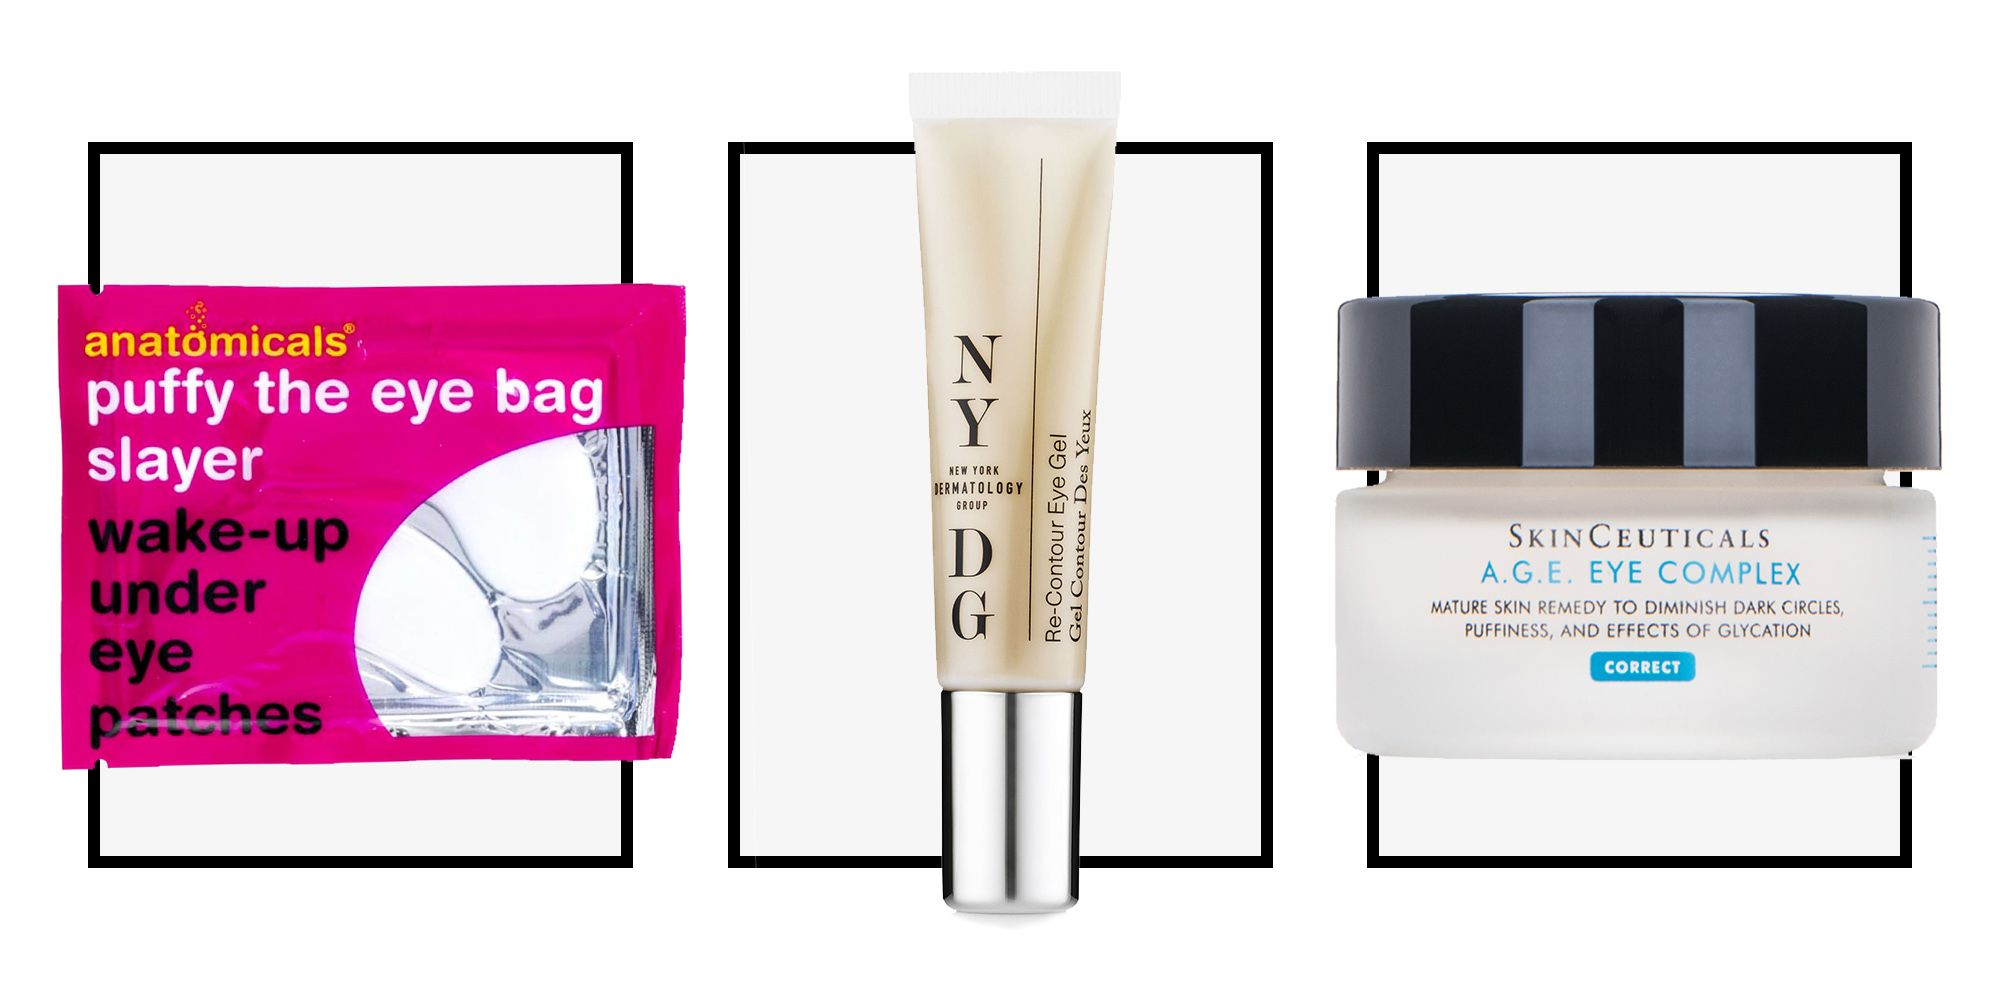 under eye care products